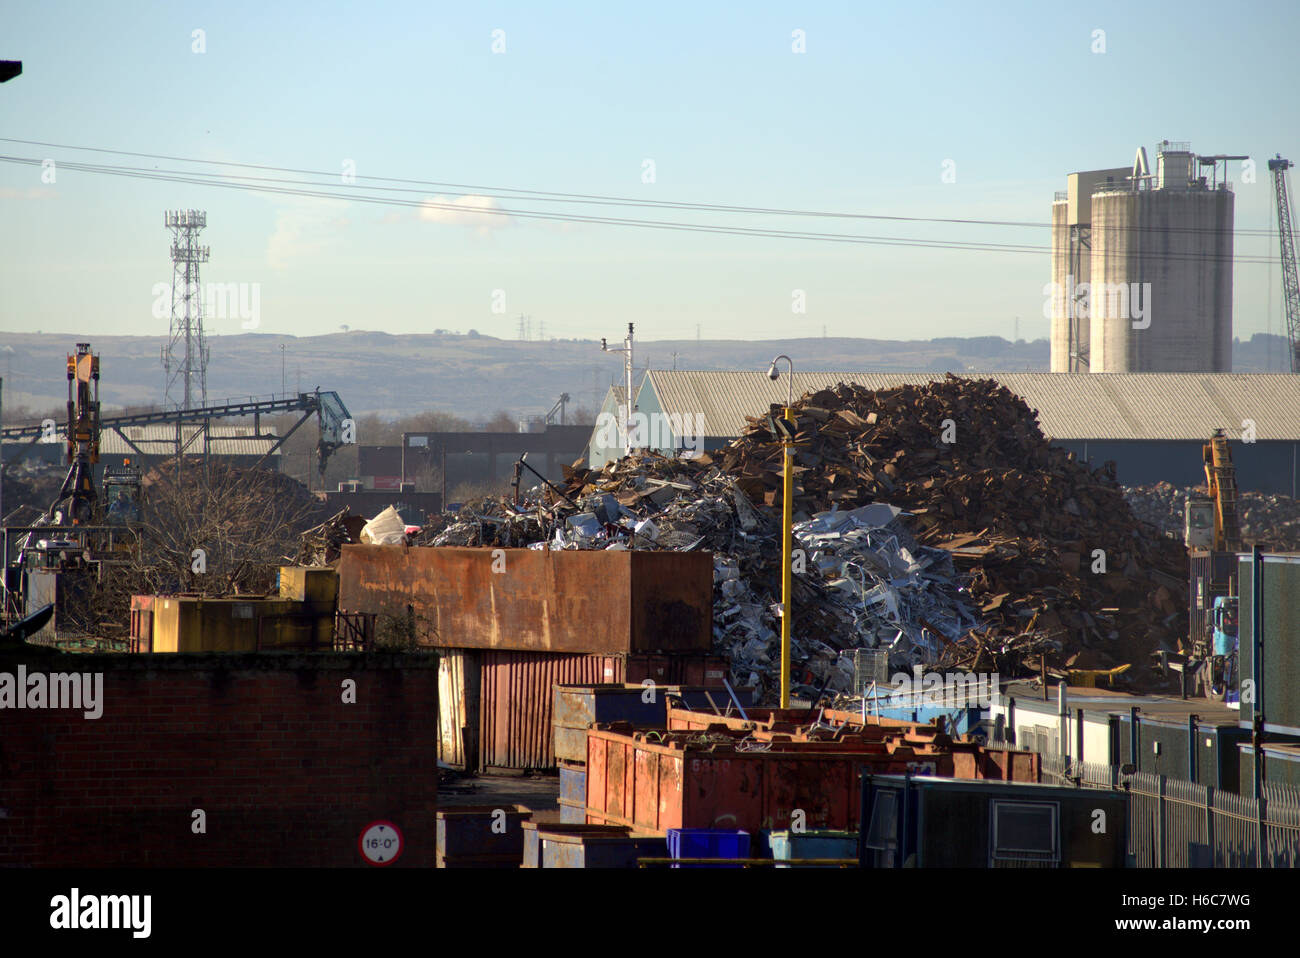 scrap yard  south street  Whiteinch Glasgow Clydeside site of recent explosion blast preparing scrap for transport - Stock Image